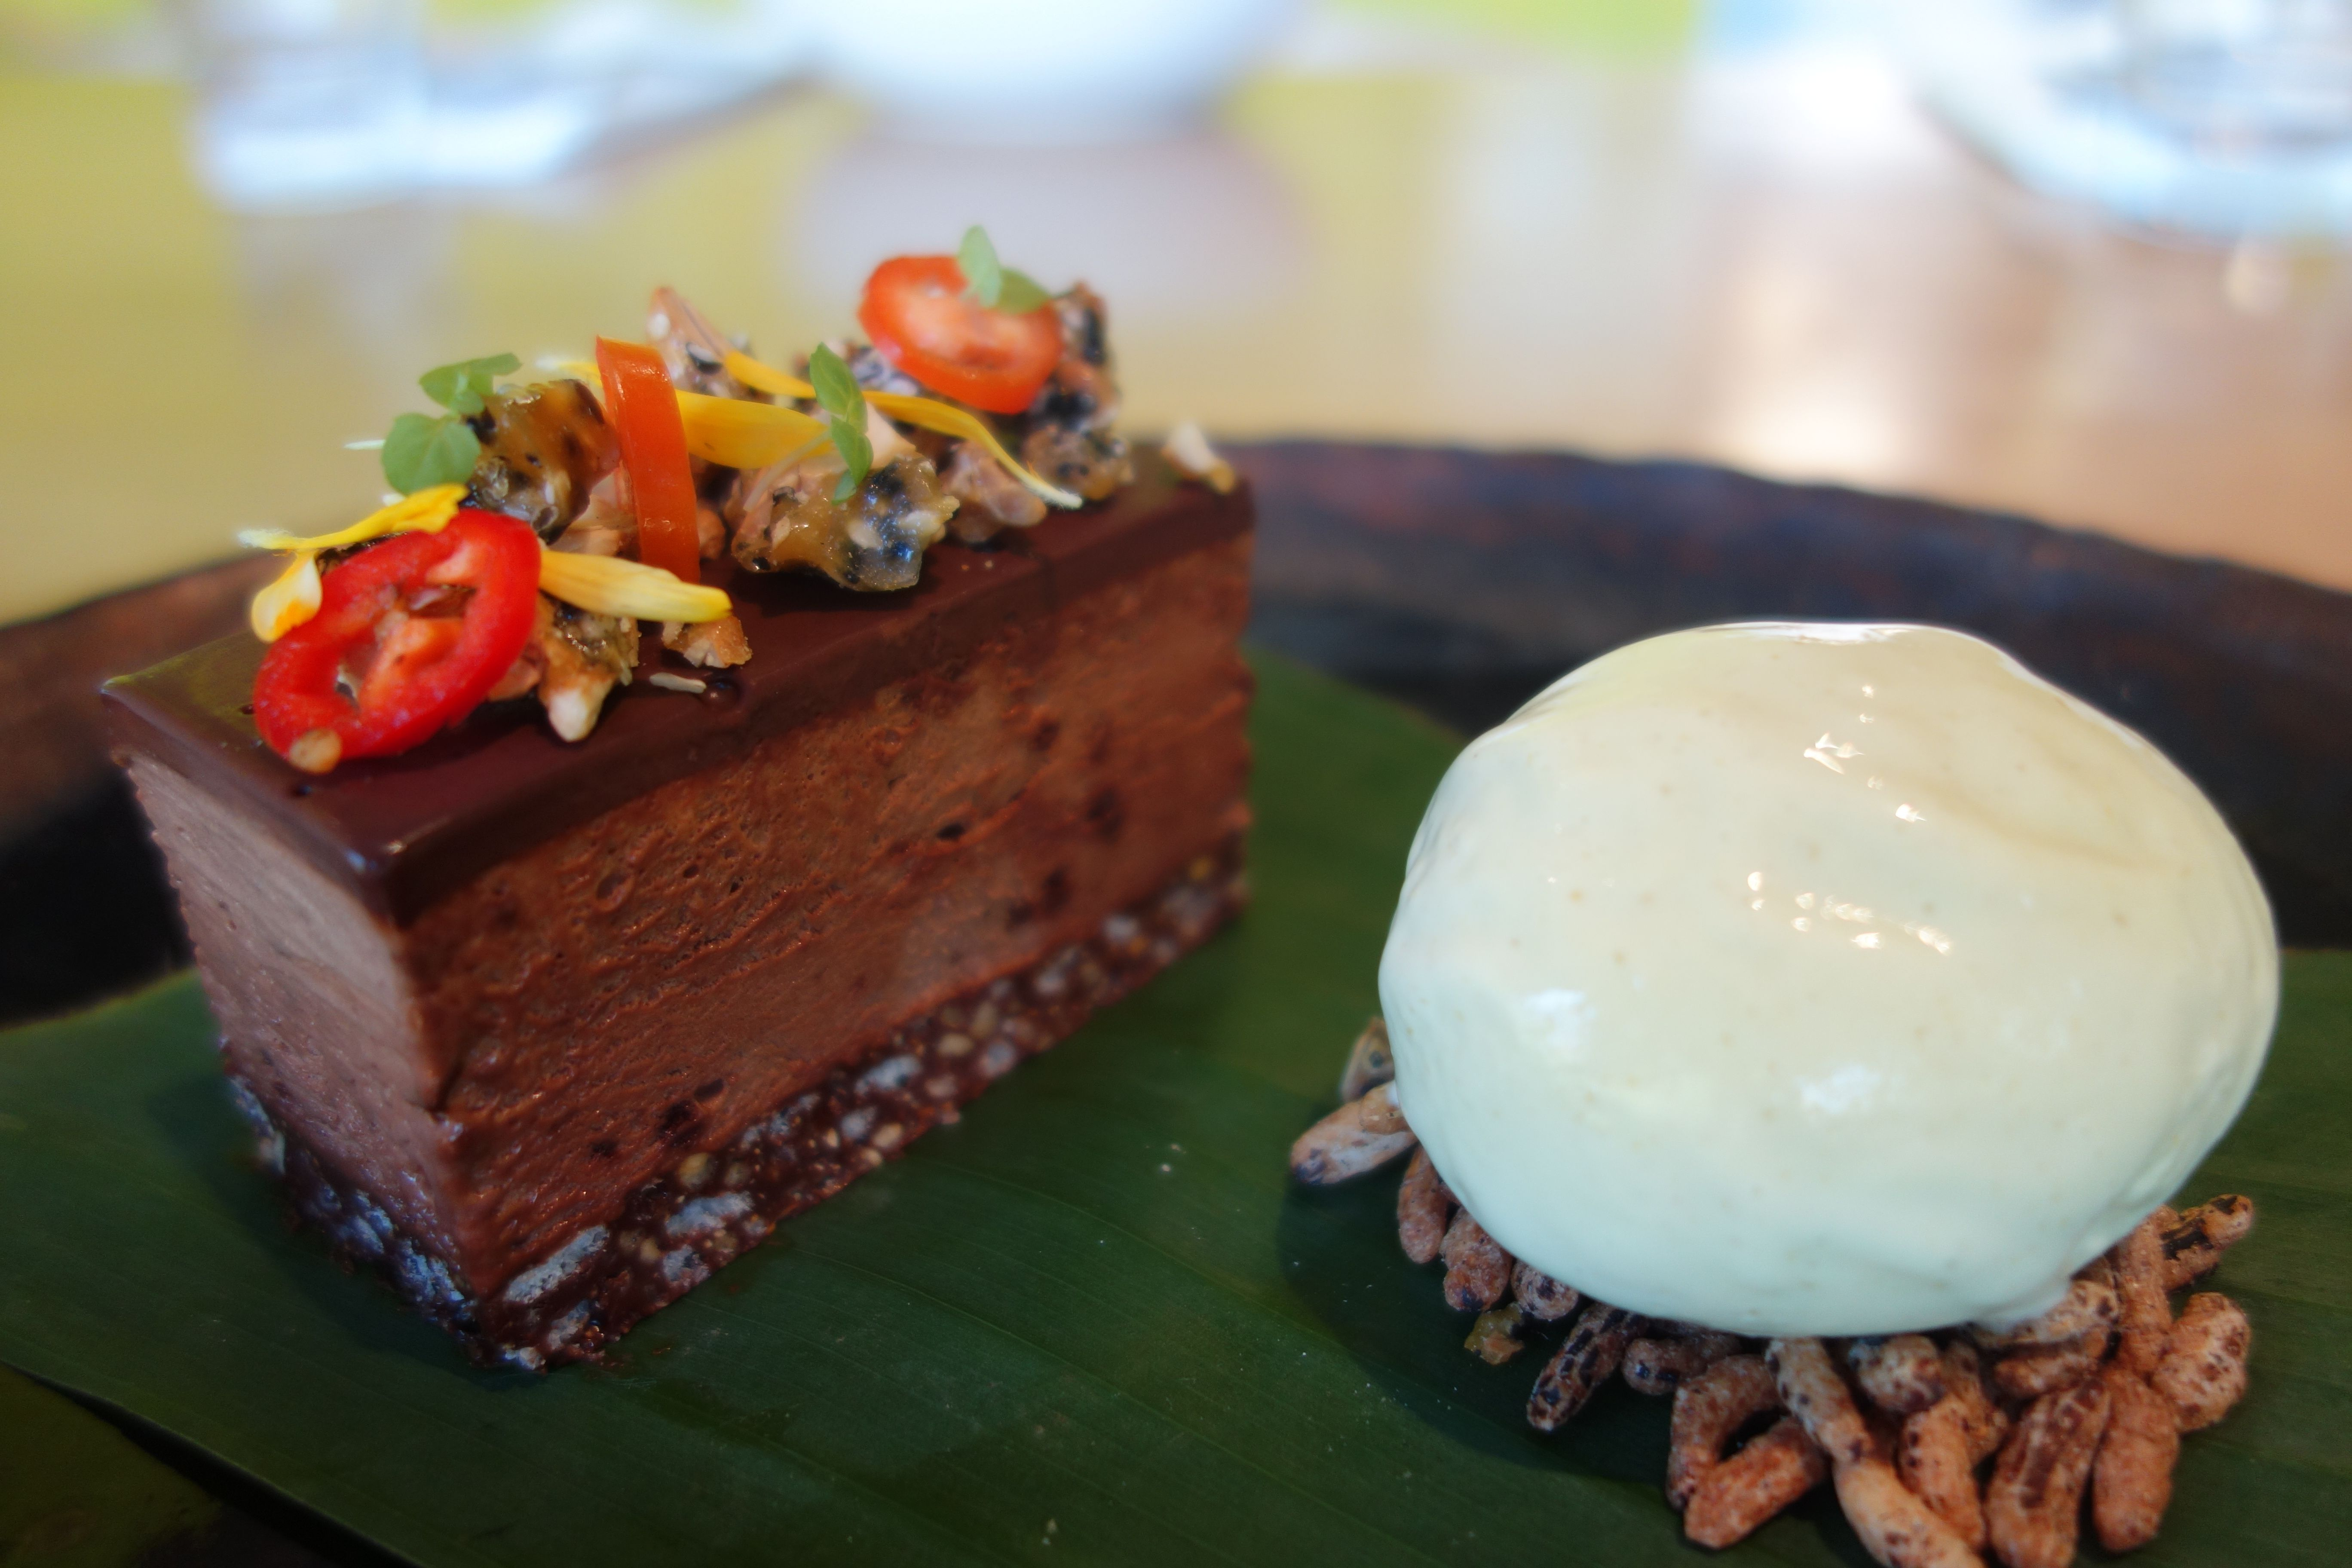 Chocolate Delice with Chilli, Cashew Nut Praline, Puffed ...